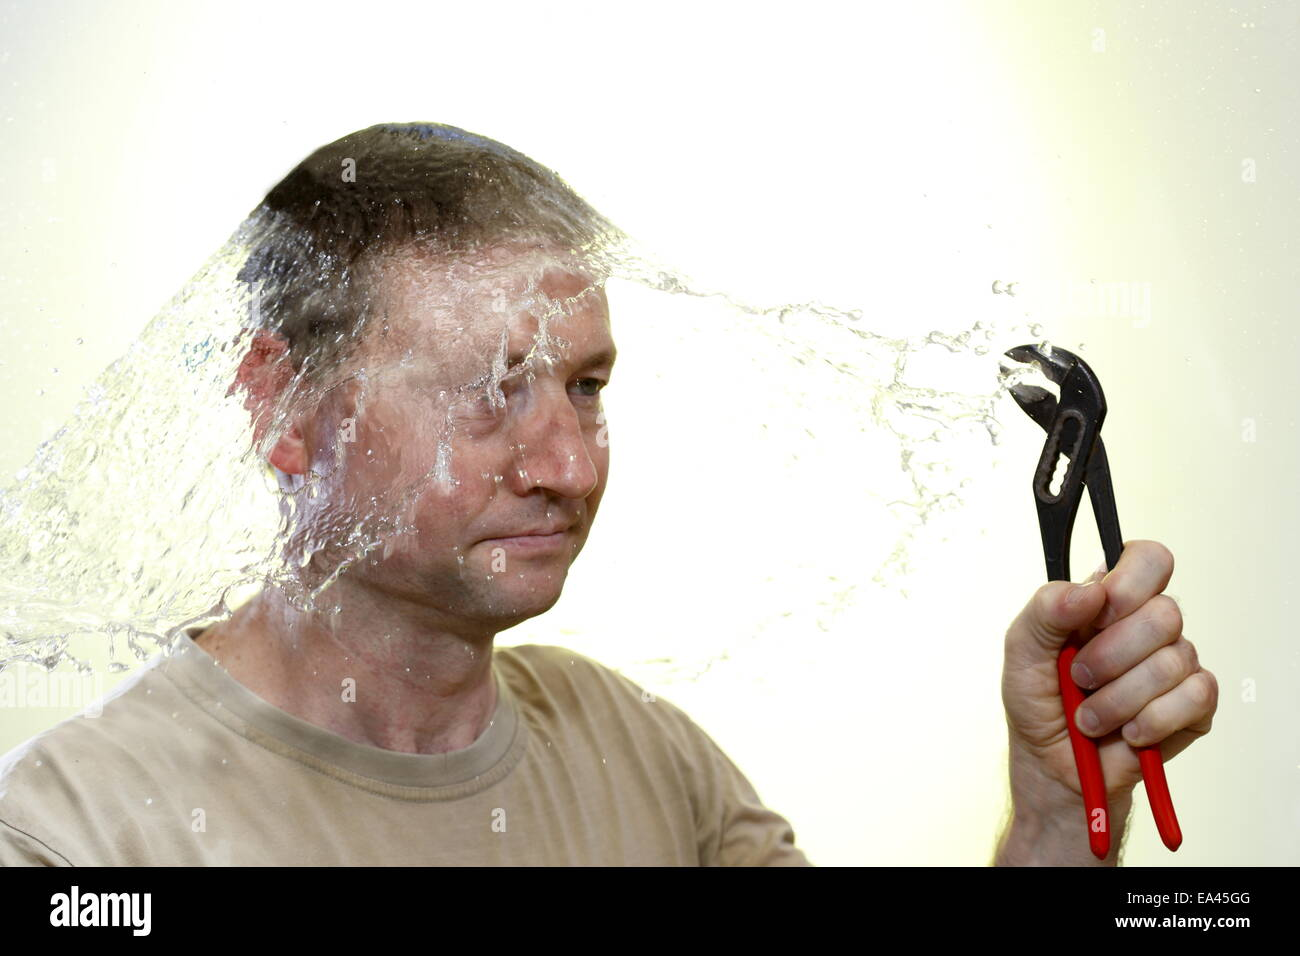 bursting of pipes - Stock Image